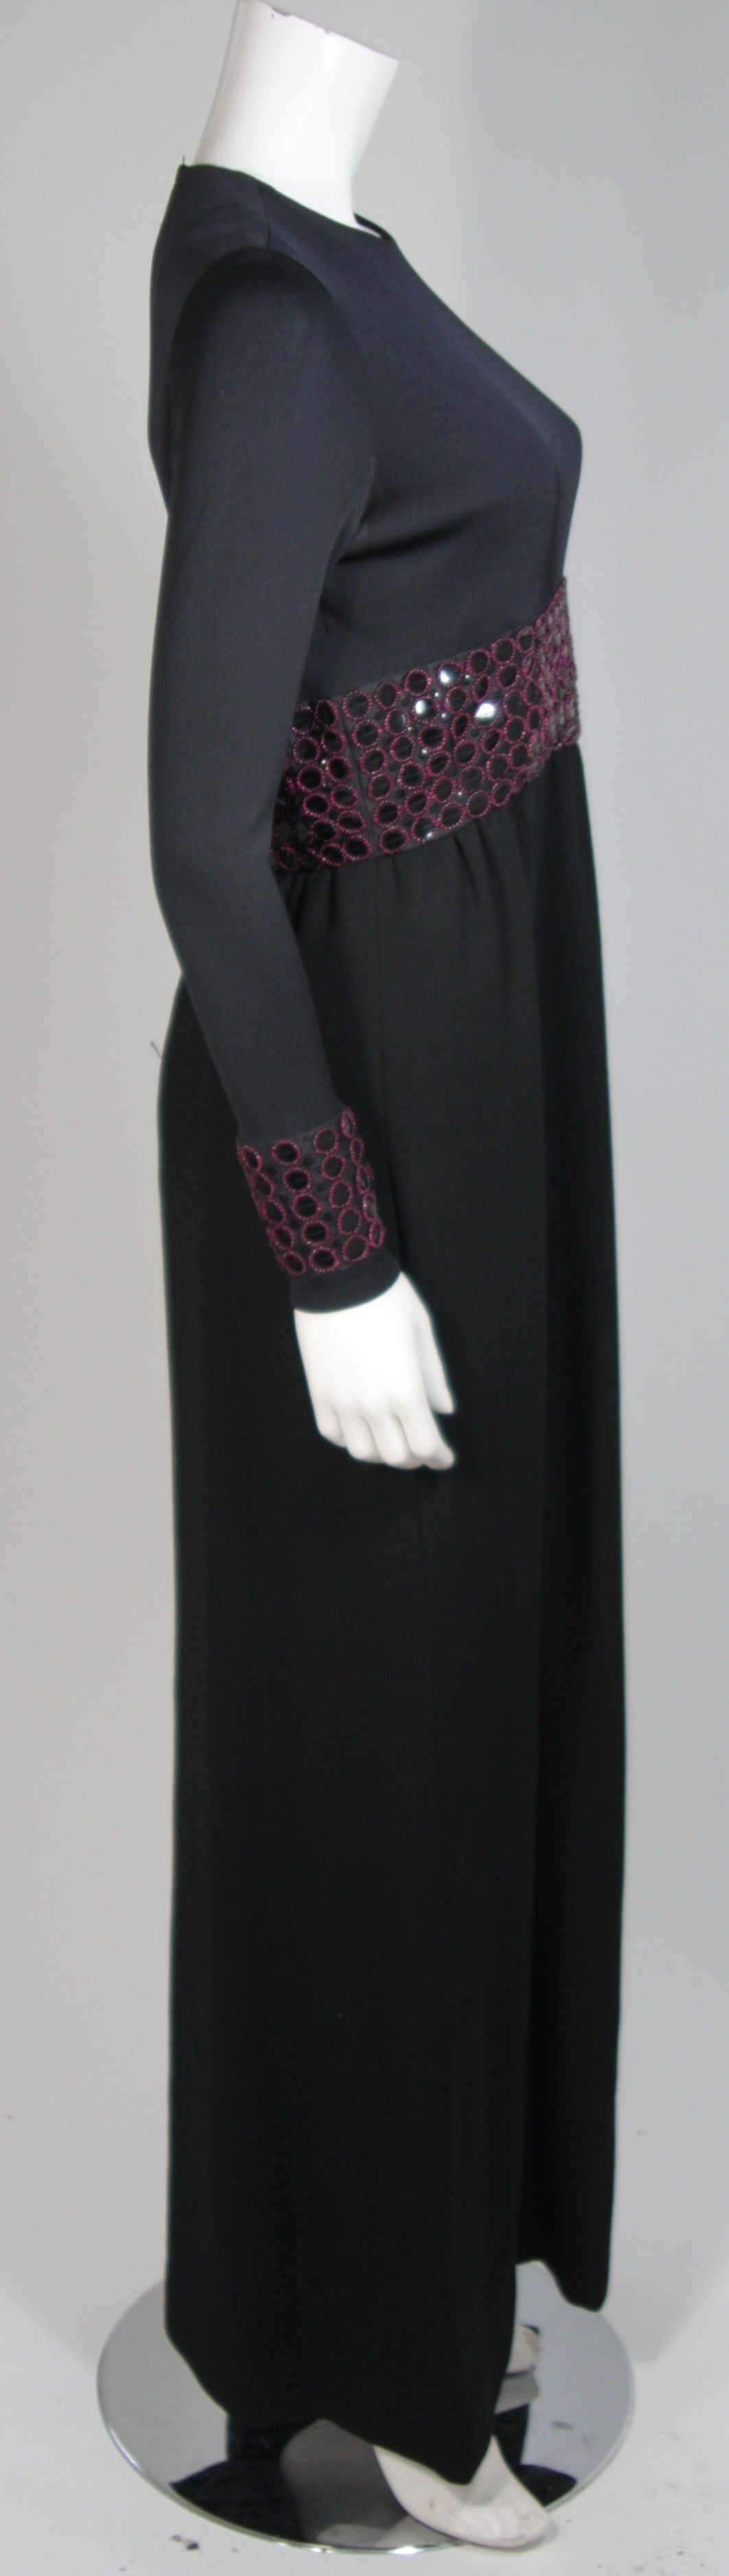 Chester Weinberg Black Long Sleeve Gown With Beaded Waist Size S M 5